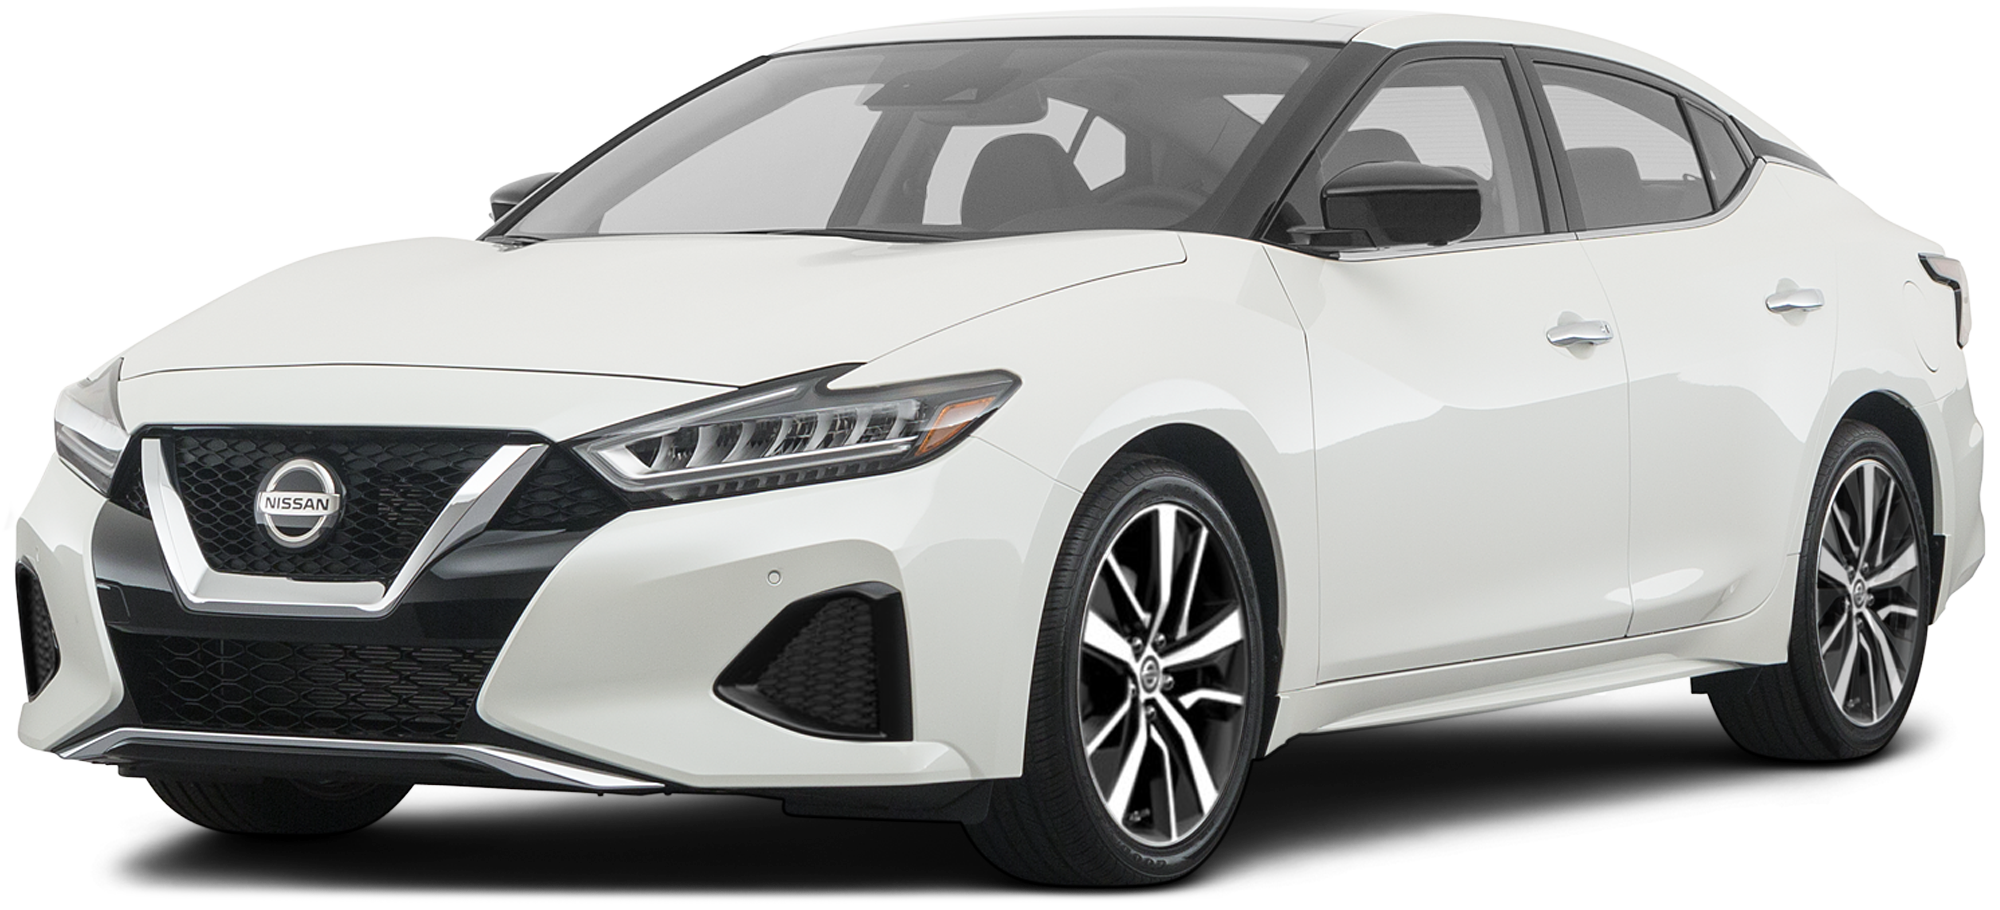 2019 Nissan Maxima Incentives, Specials & Offers in Prince George BC